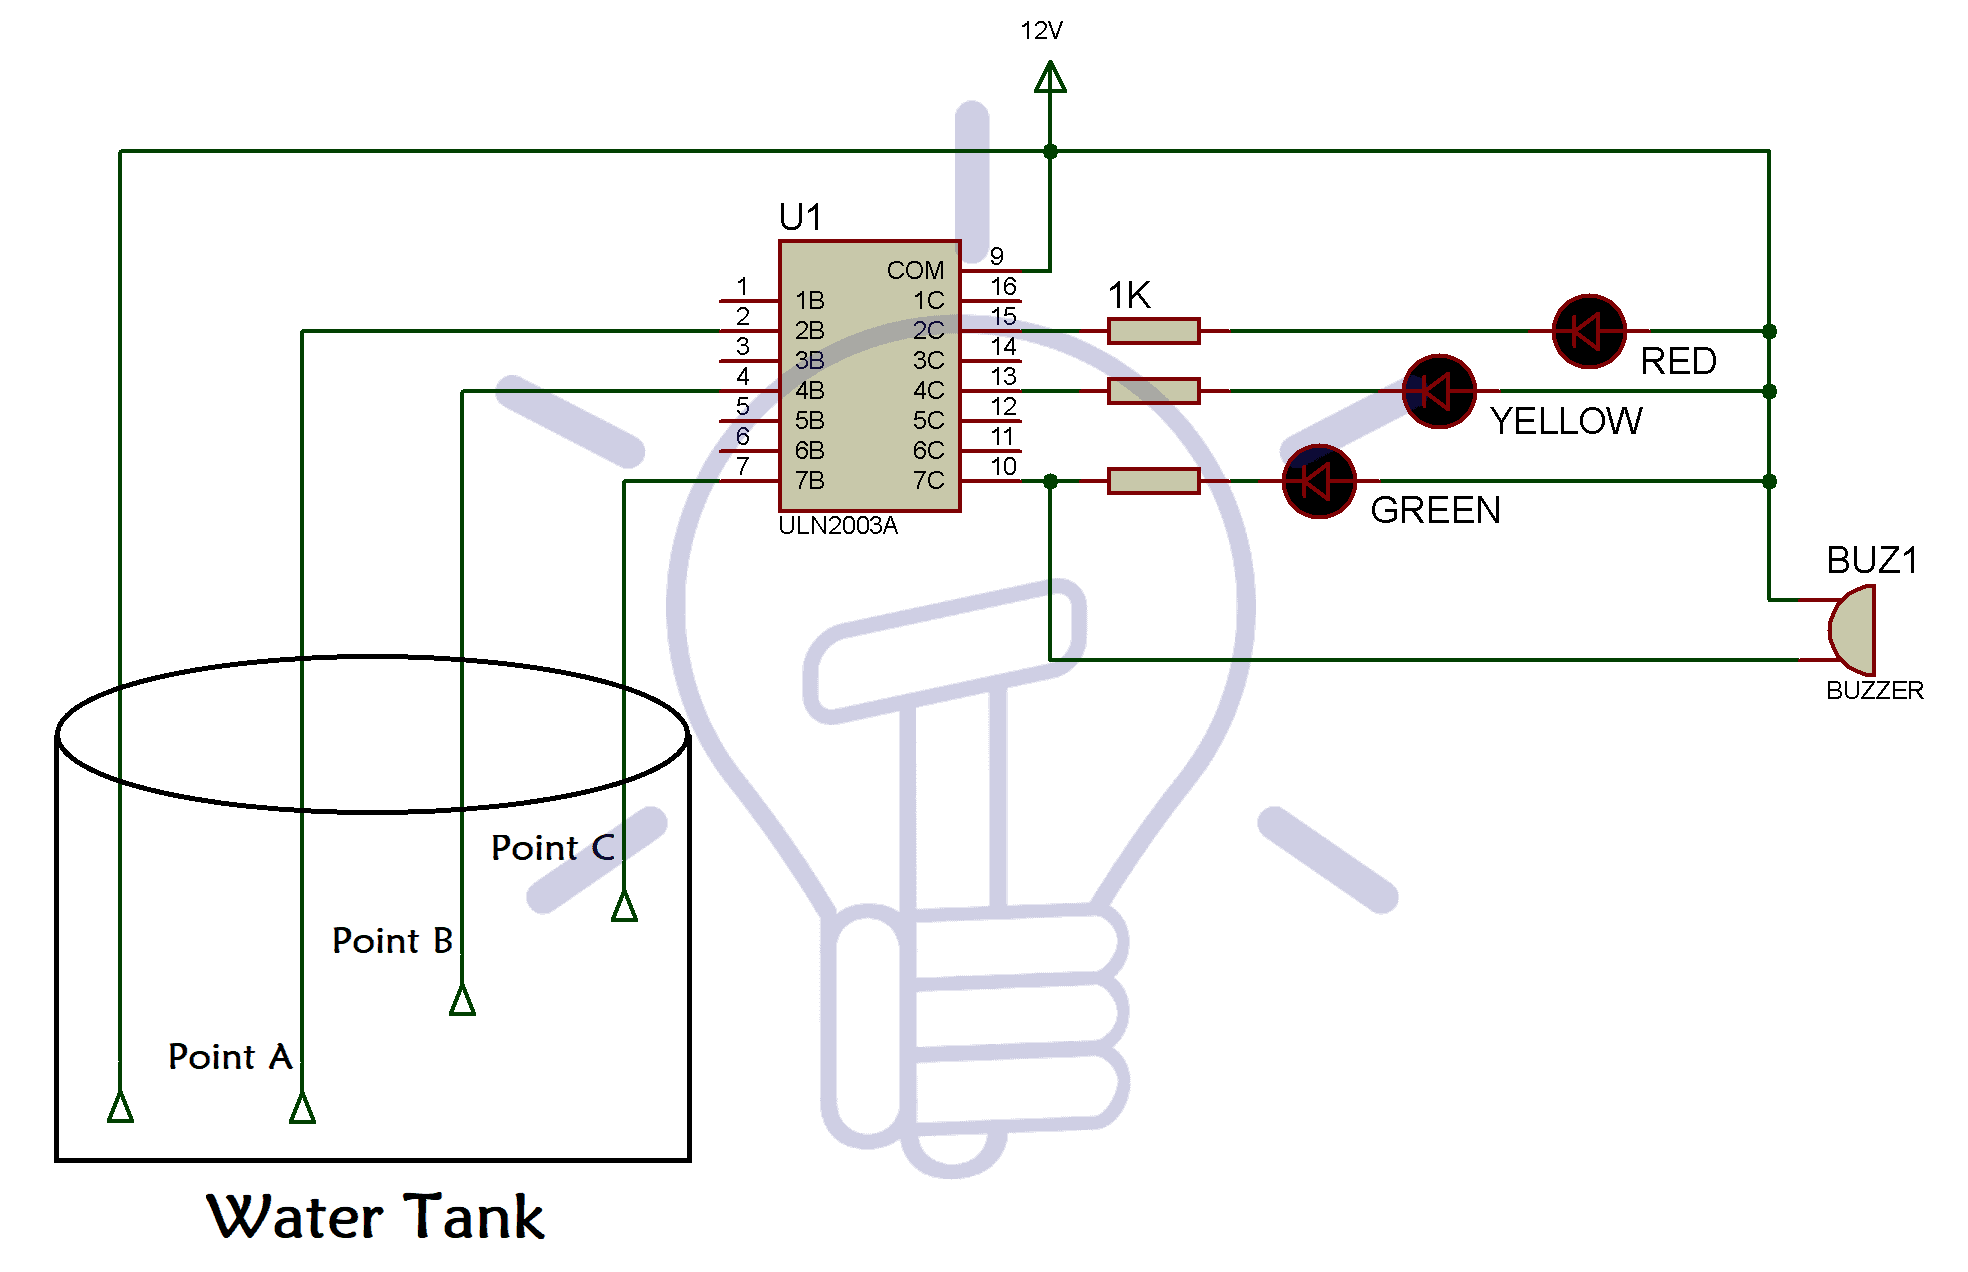 hight resolution of water level indicator circuit diagram using bc547 and uln 2003 ic water level indicator circuit schematic circuit diagram and